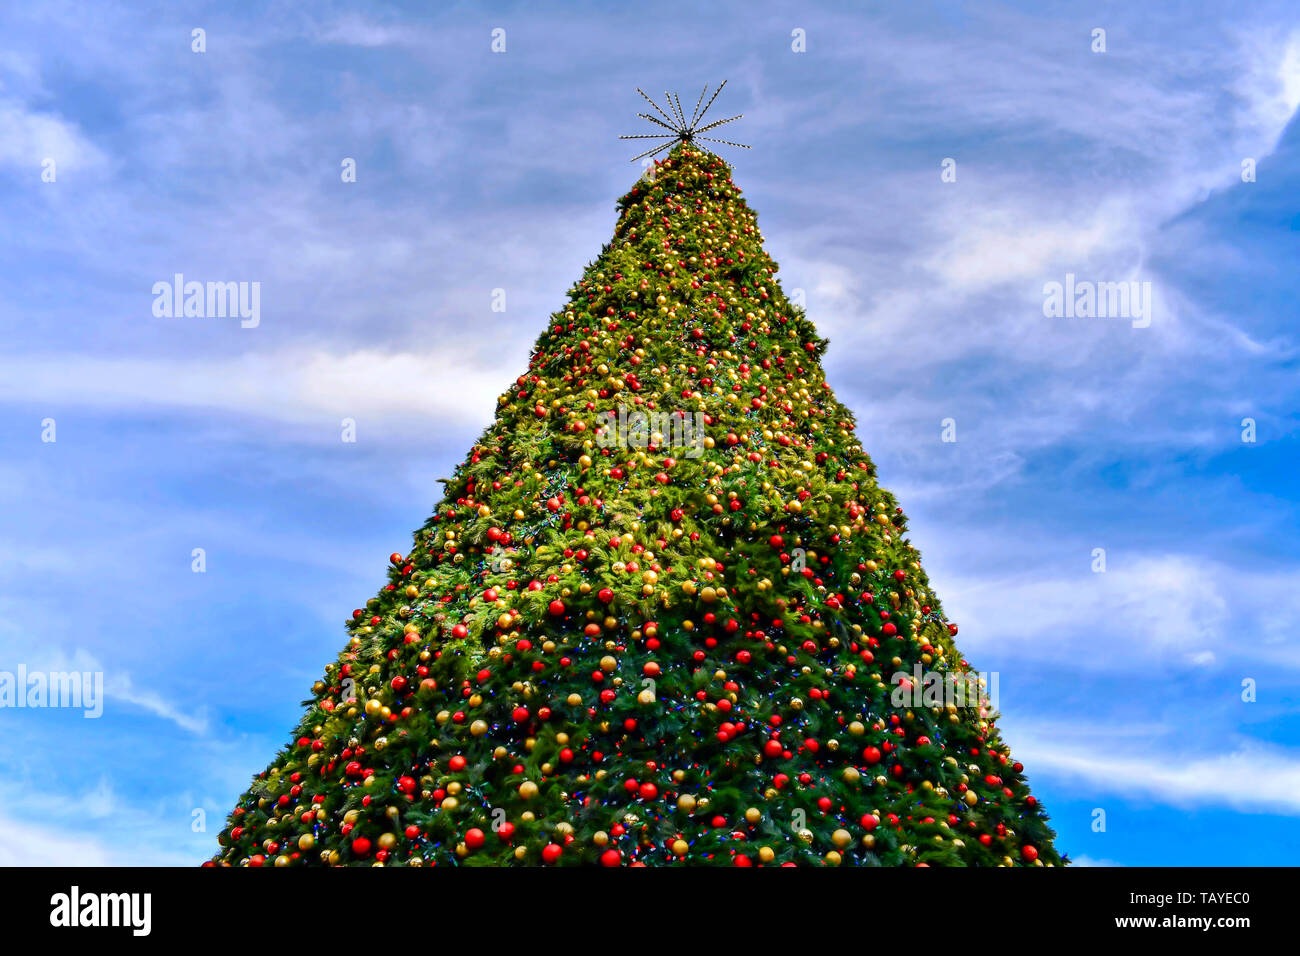 Orlando, Florida . December 24, 2018. Top view of Christmas Tree on bluelight sky background in Lake Eola Park area at Orlando Downtown. Stock Photo